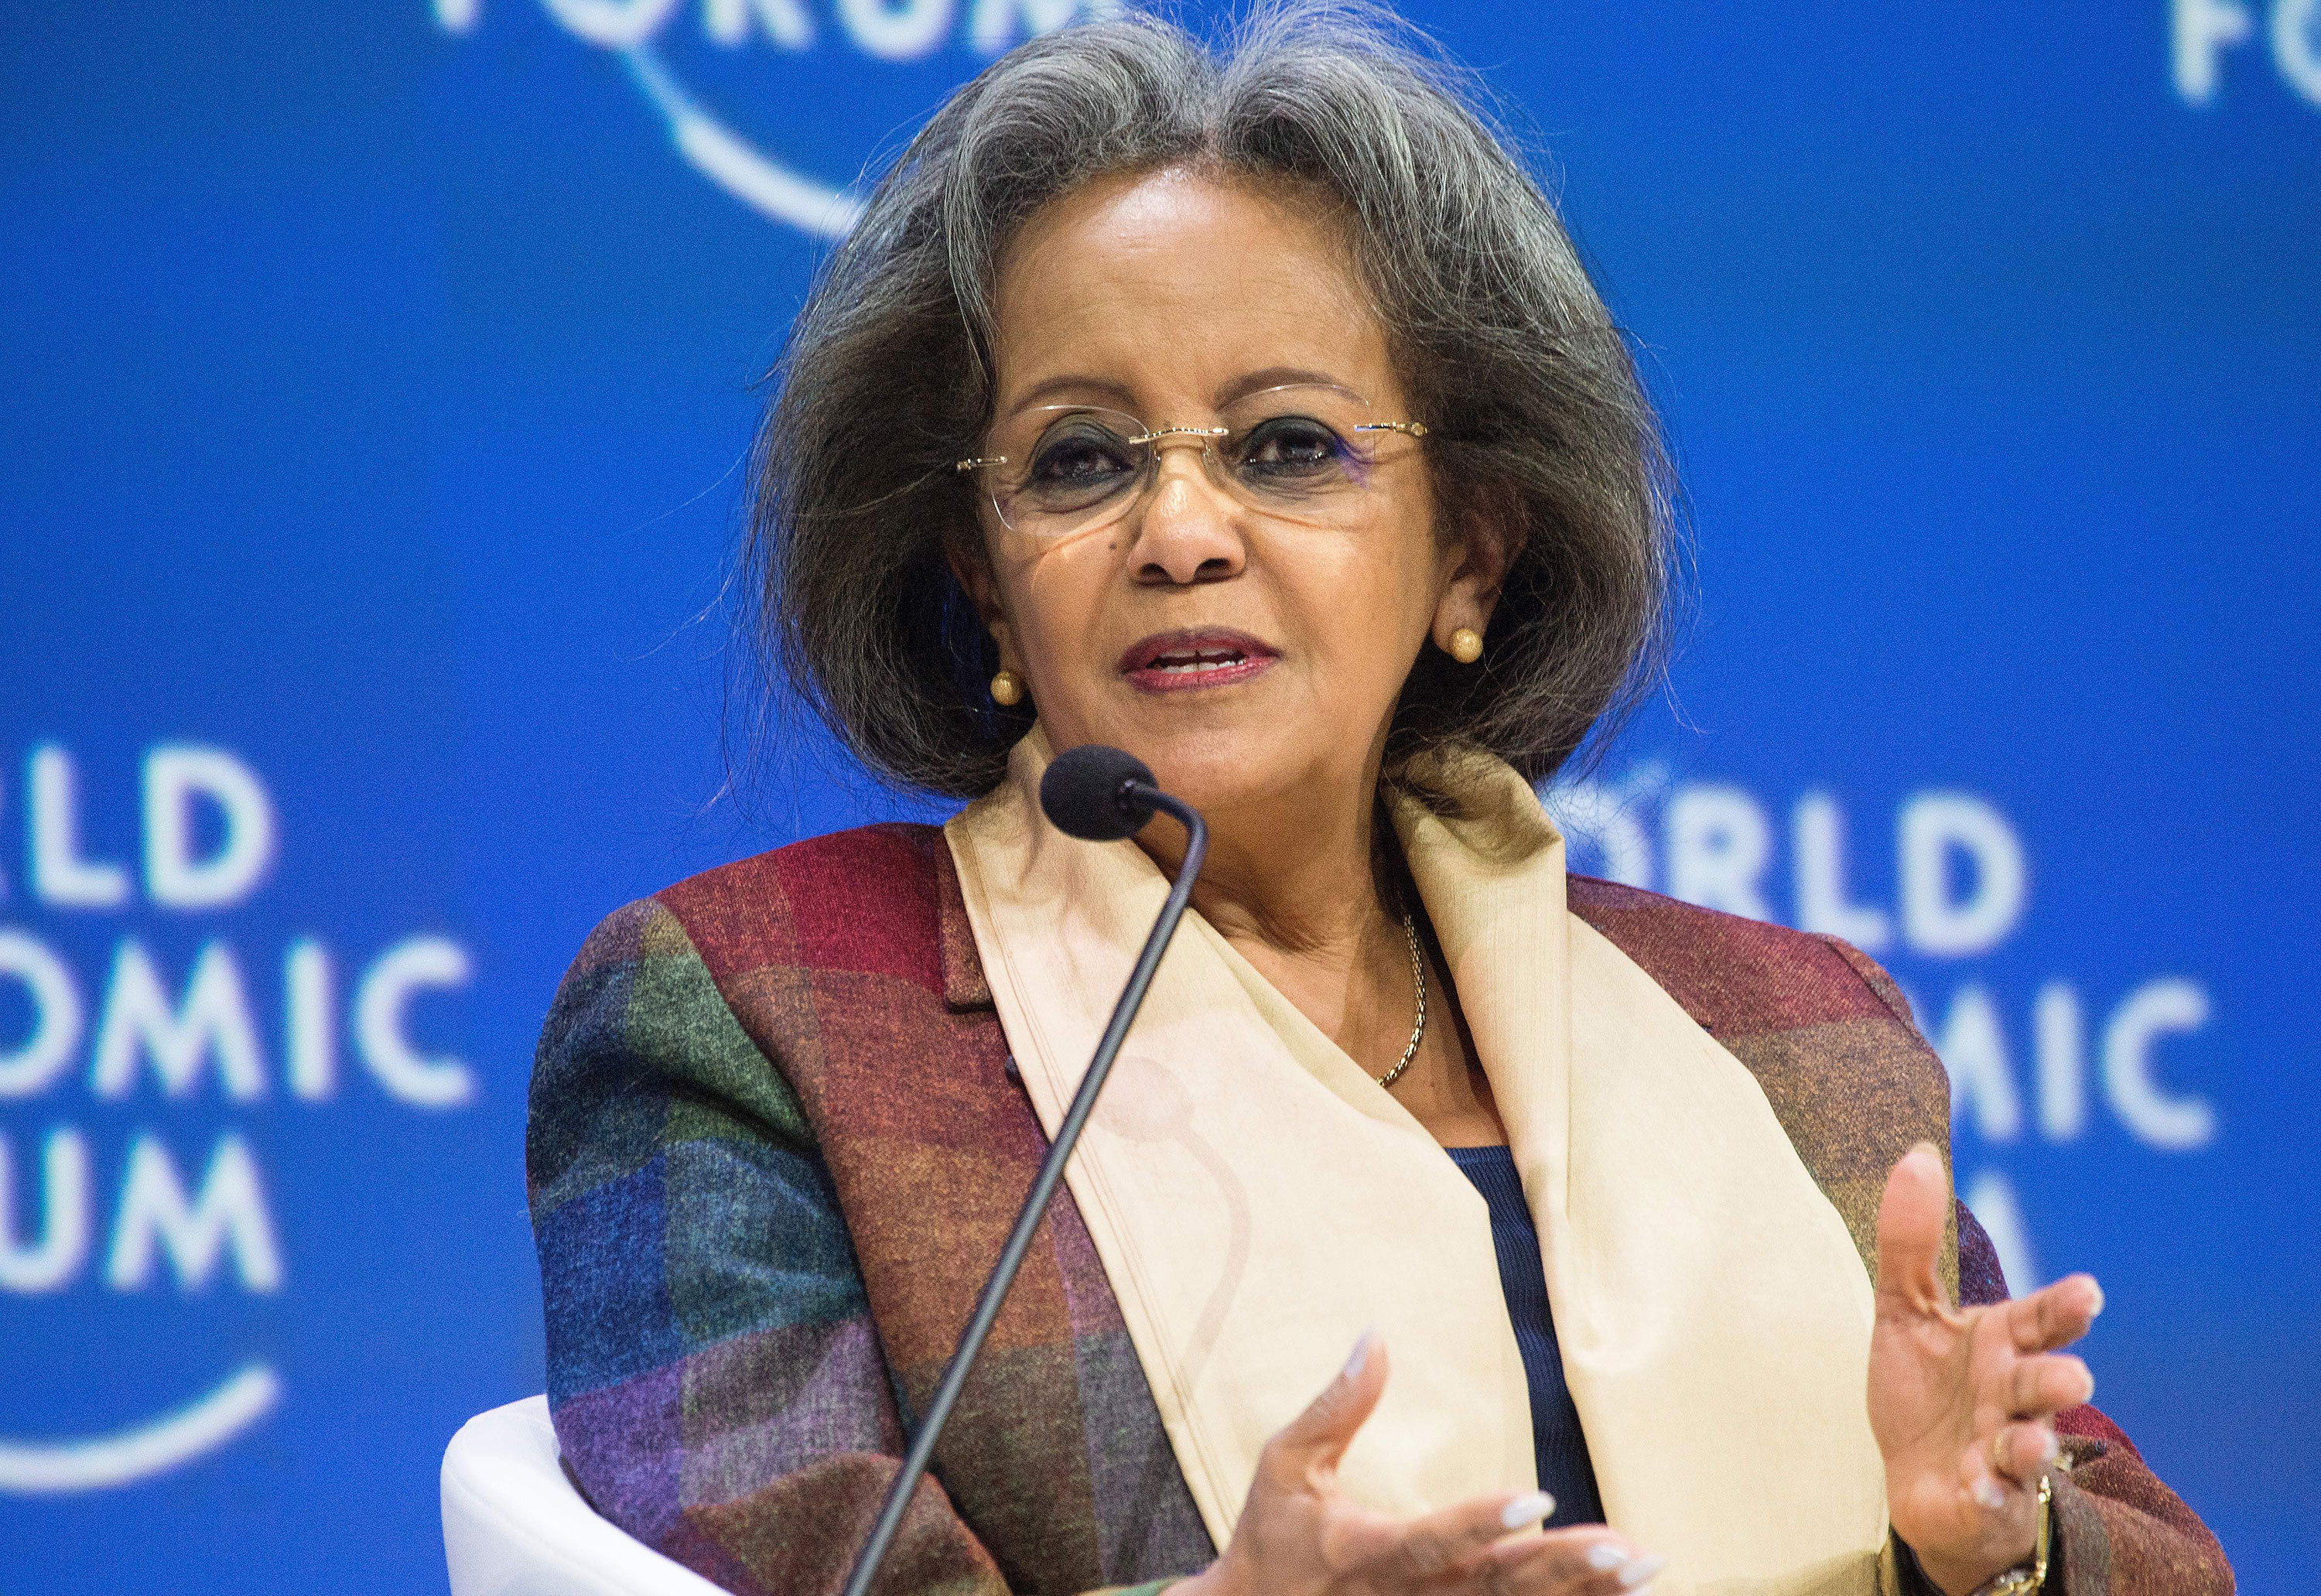 Ethiopia's President Sahle-Work Zewde speaks during the World Economic Forum Africa meeting on September 4, 2019, in Cape Town.